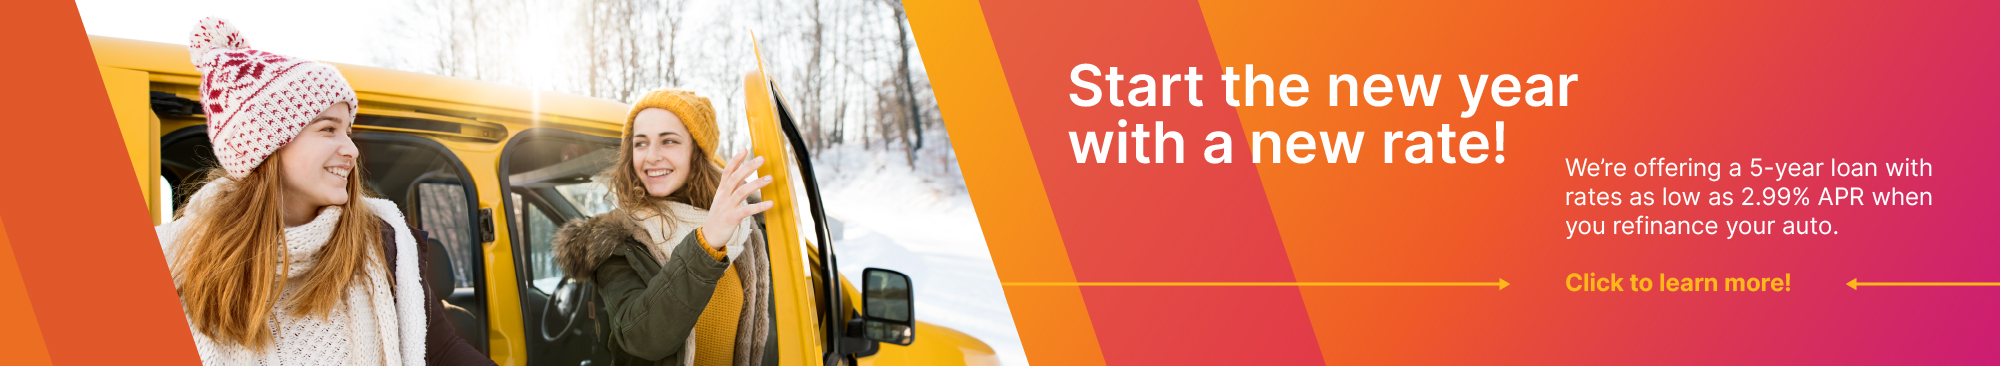 Two girls exiting yellow car, snow, winter, new auto rate, refinance